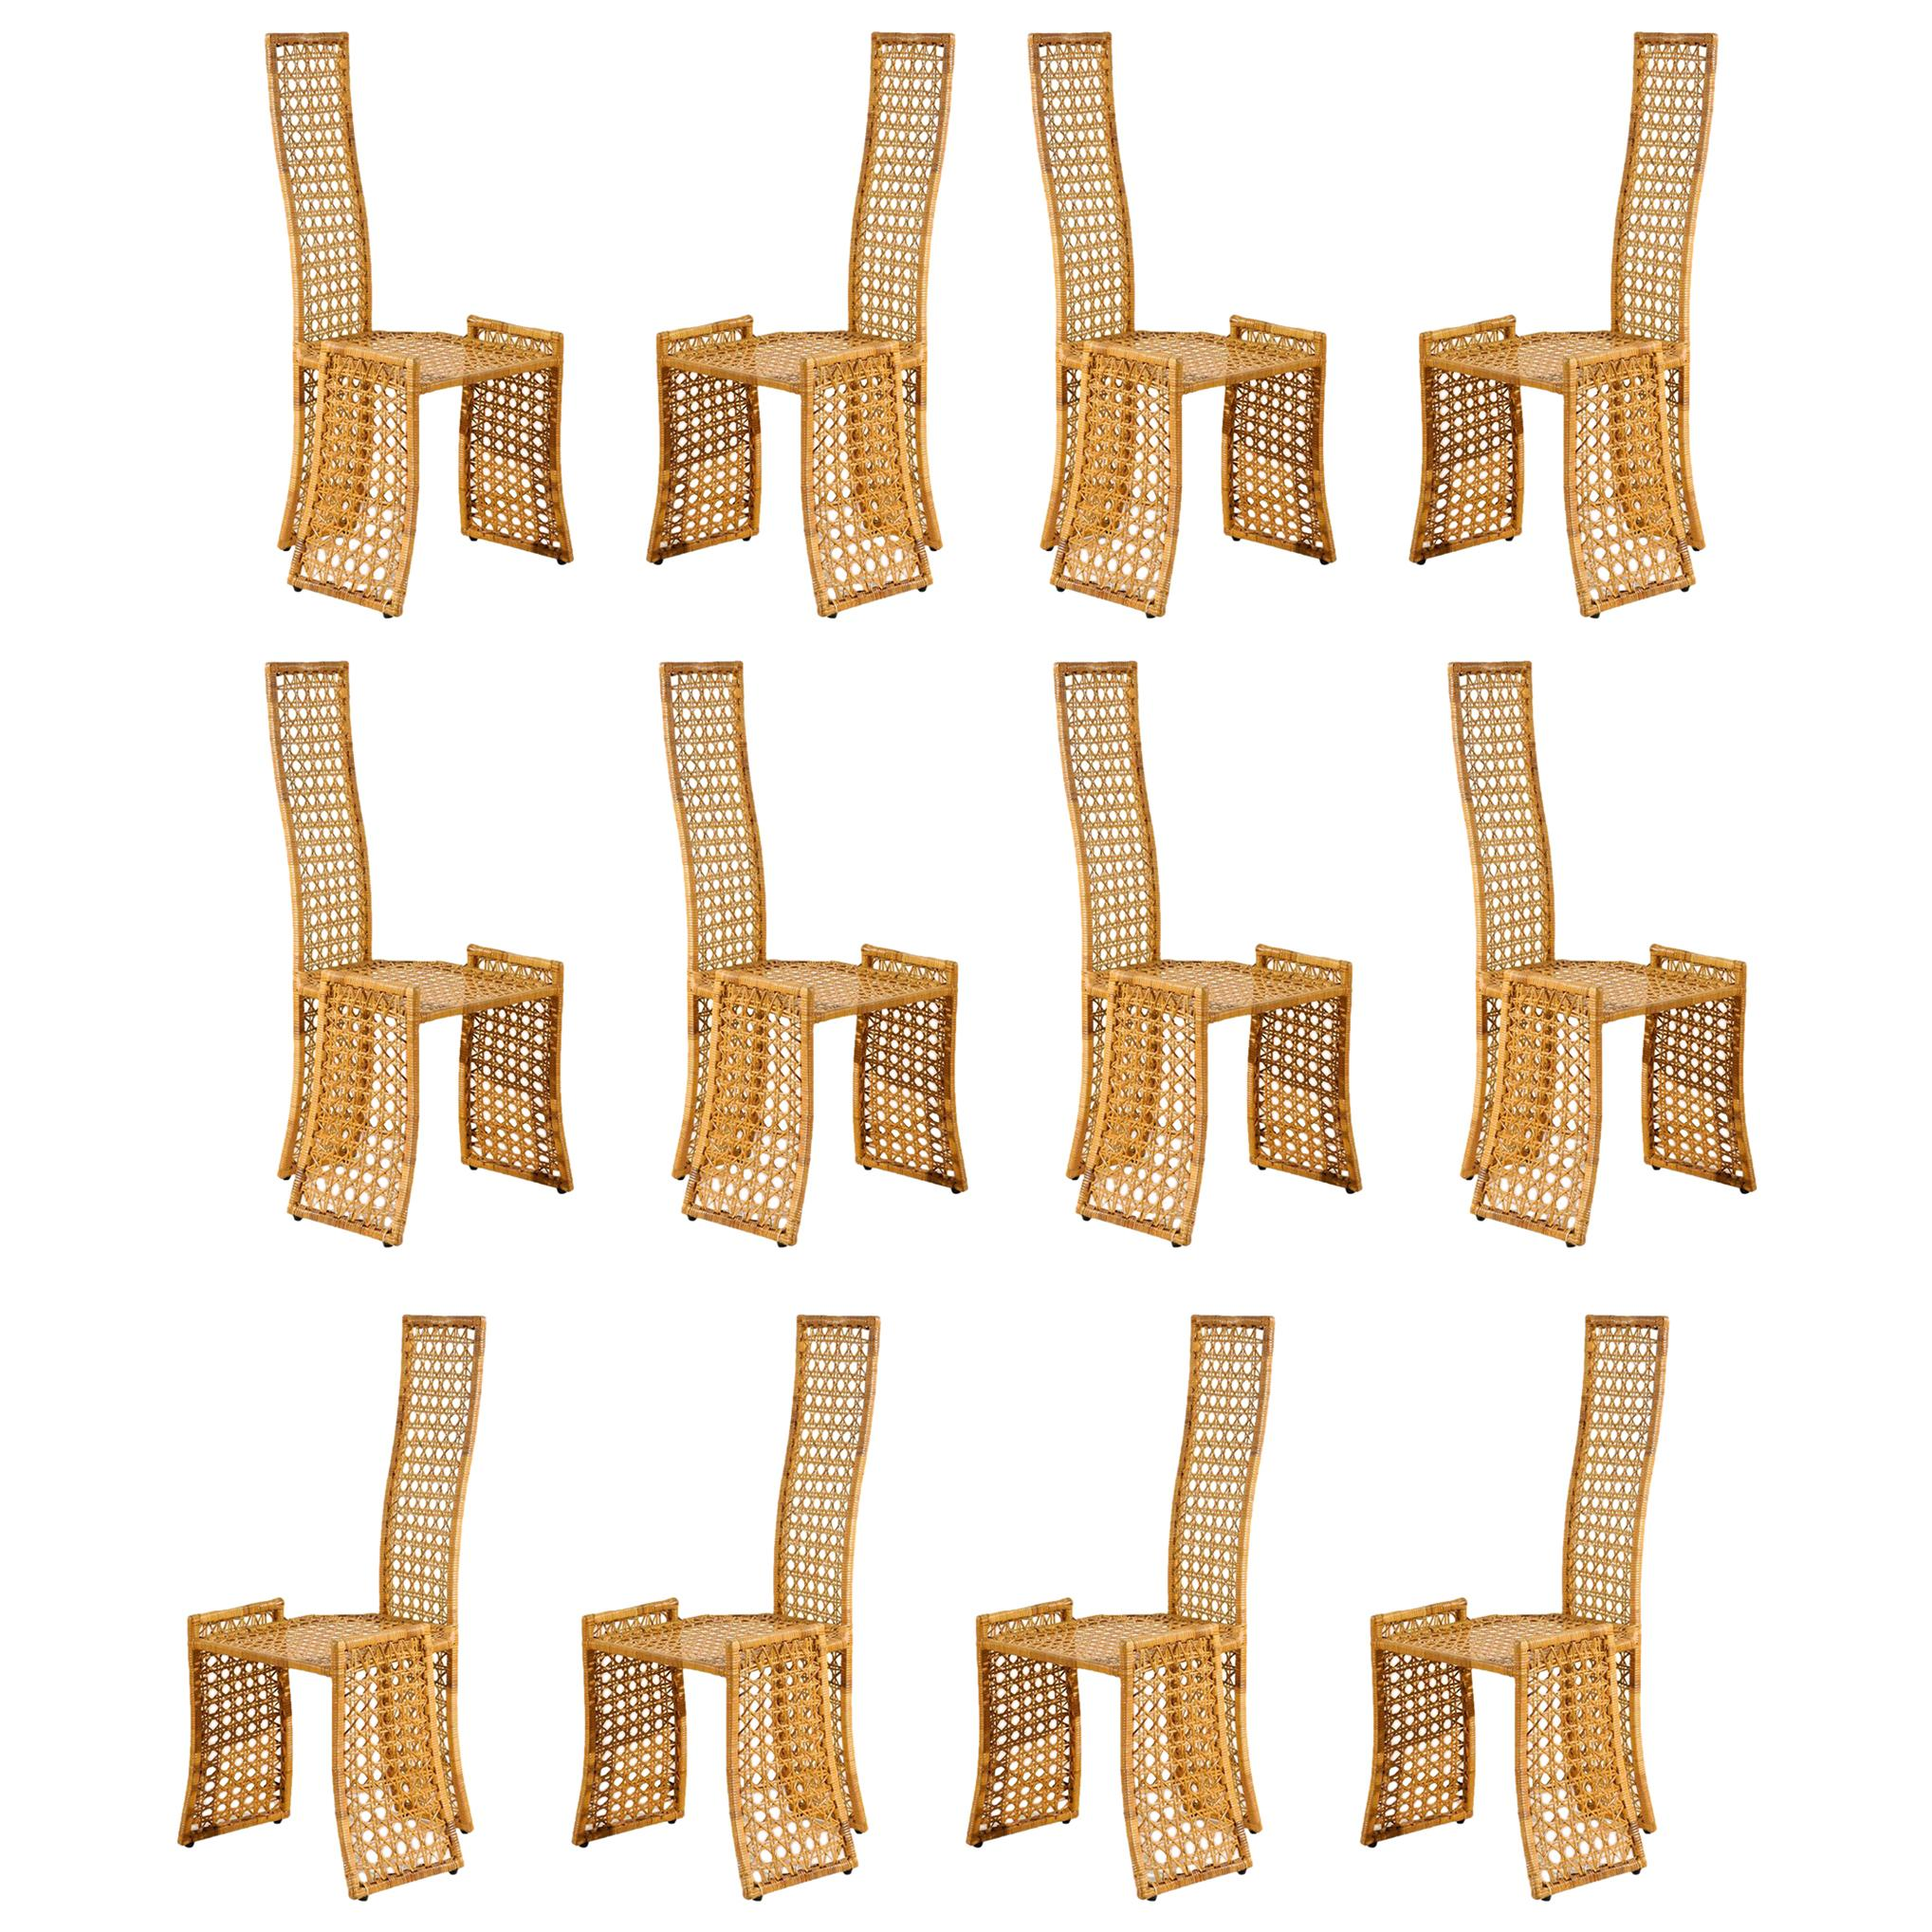 Sublime Restored Set of 10 Cane Dining Chairs by Danny Ho Fong, circa 1975